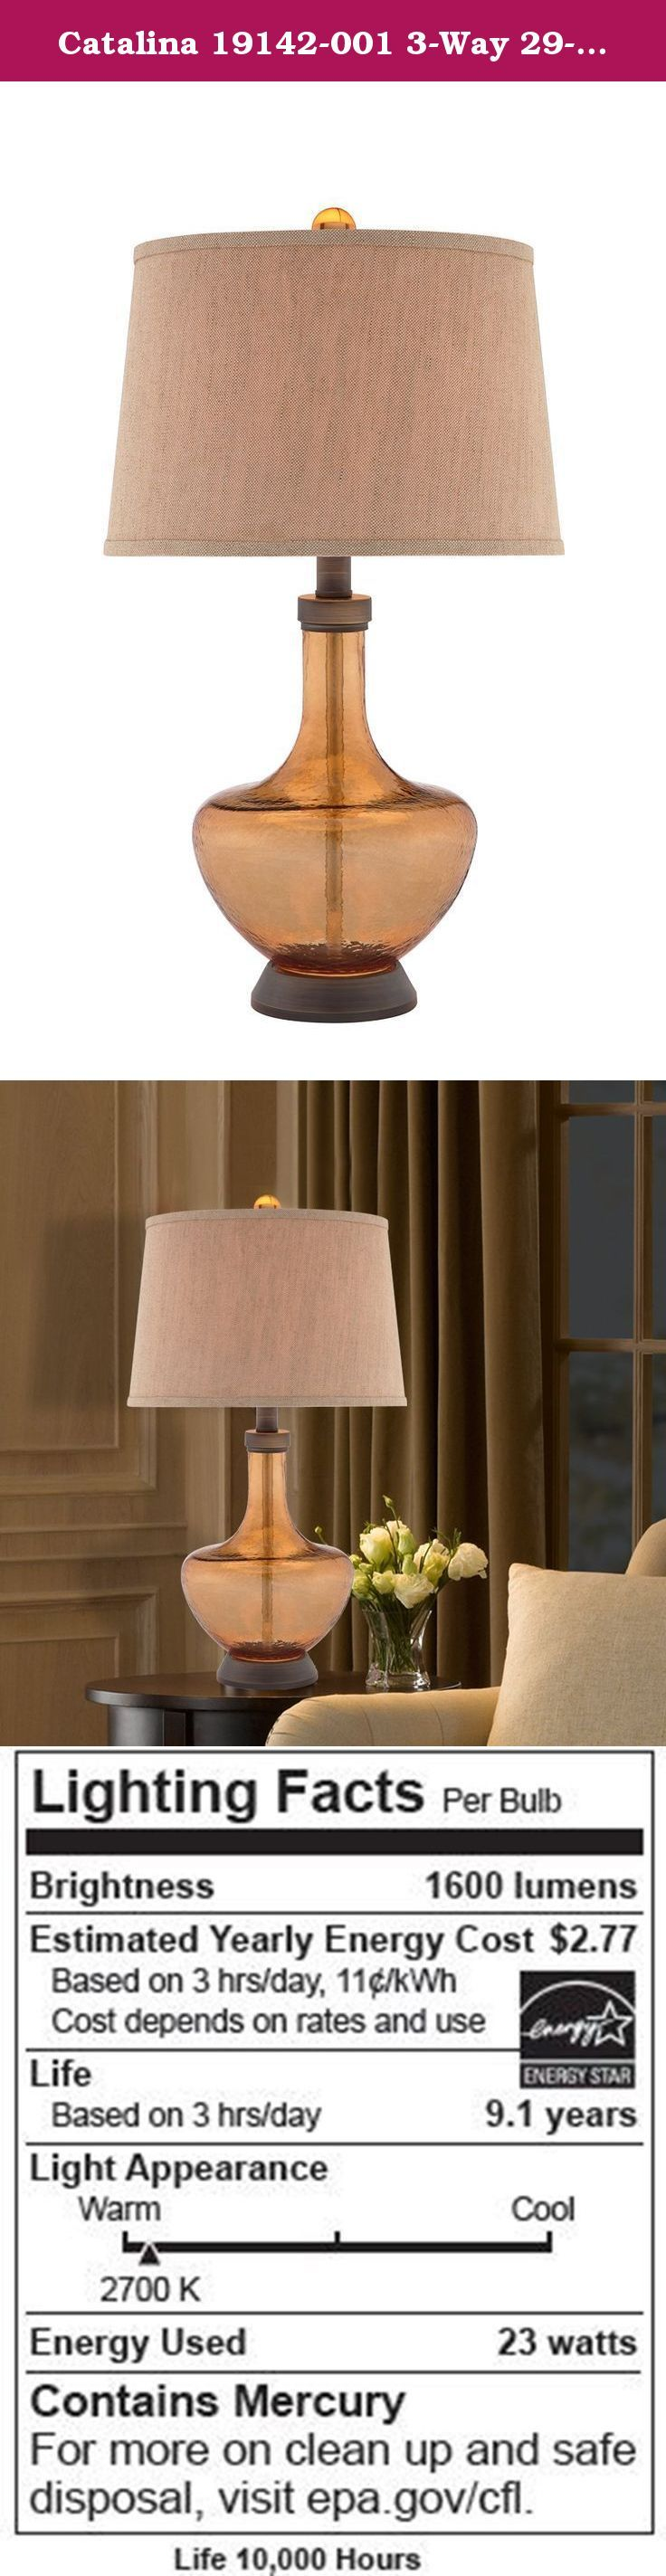 Catalina 19142-001 3-Way 29-Inch Amber Glass Table Lamp with Textured Linen Hardback Shade, Bulb Included. The Catalina 19142-001 3-Way Table Lamp offers a stylish transitional design. The glass table lamp features an amber glass base with metal accents in a dark bronze finish and textured linen hardback shade. This lamp is rated for 120-volts and uses a 3-way 150-watt incandescent bulb or 3-way E26 CFL spiral bulb. A 3-way E26 CFL spiral bulb is included. The light source is soft and the...